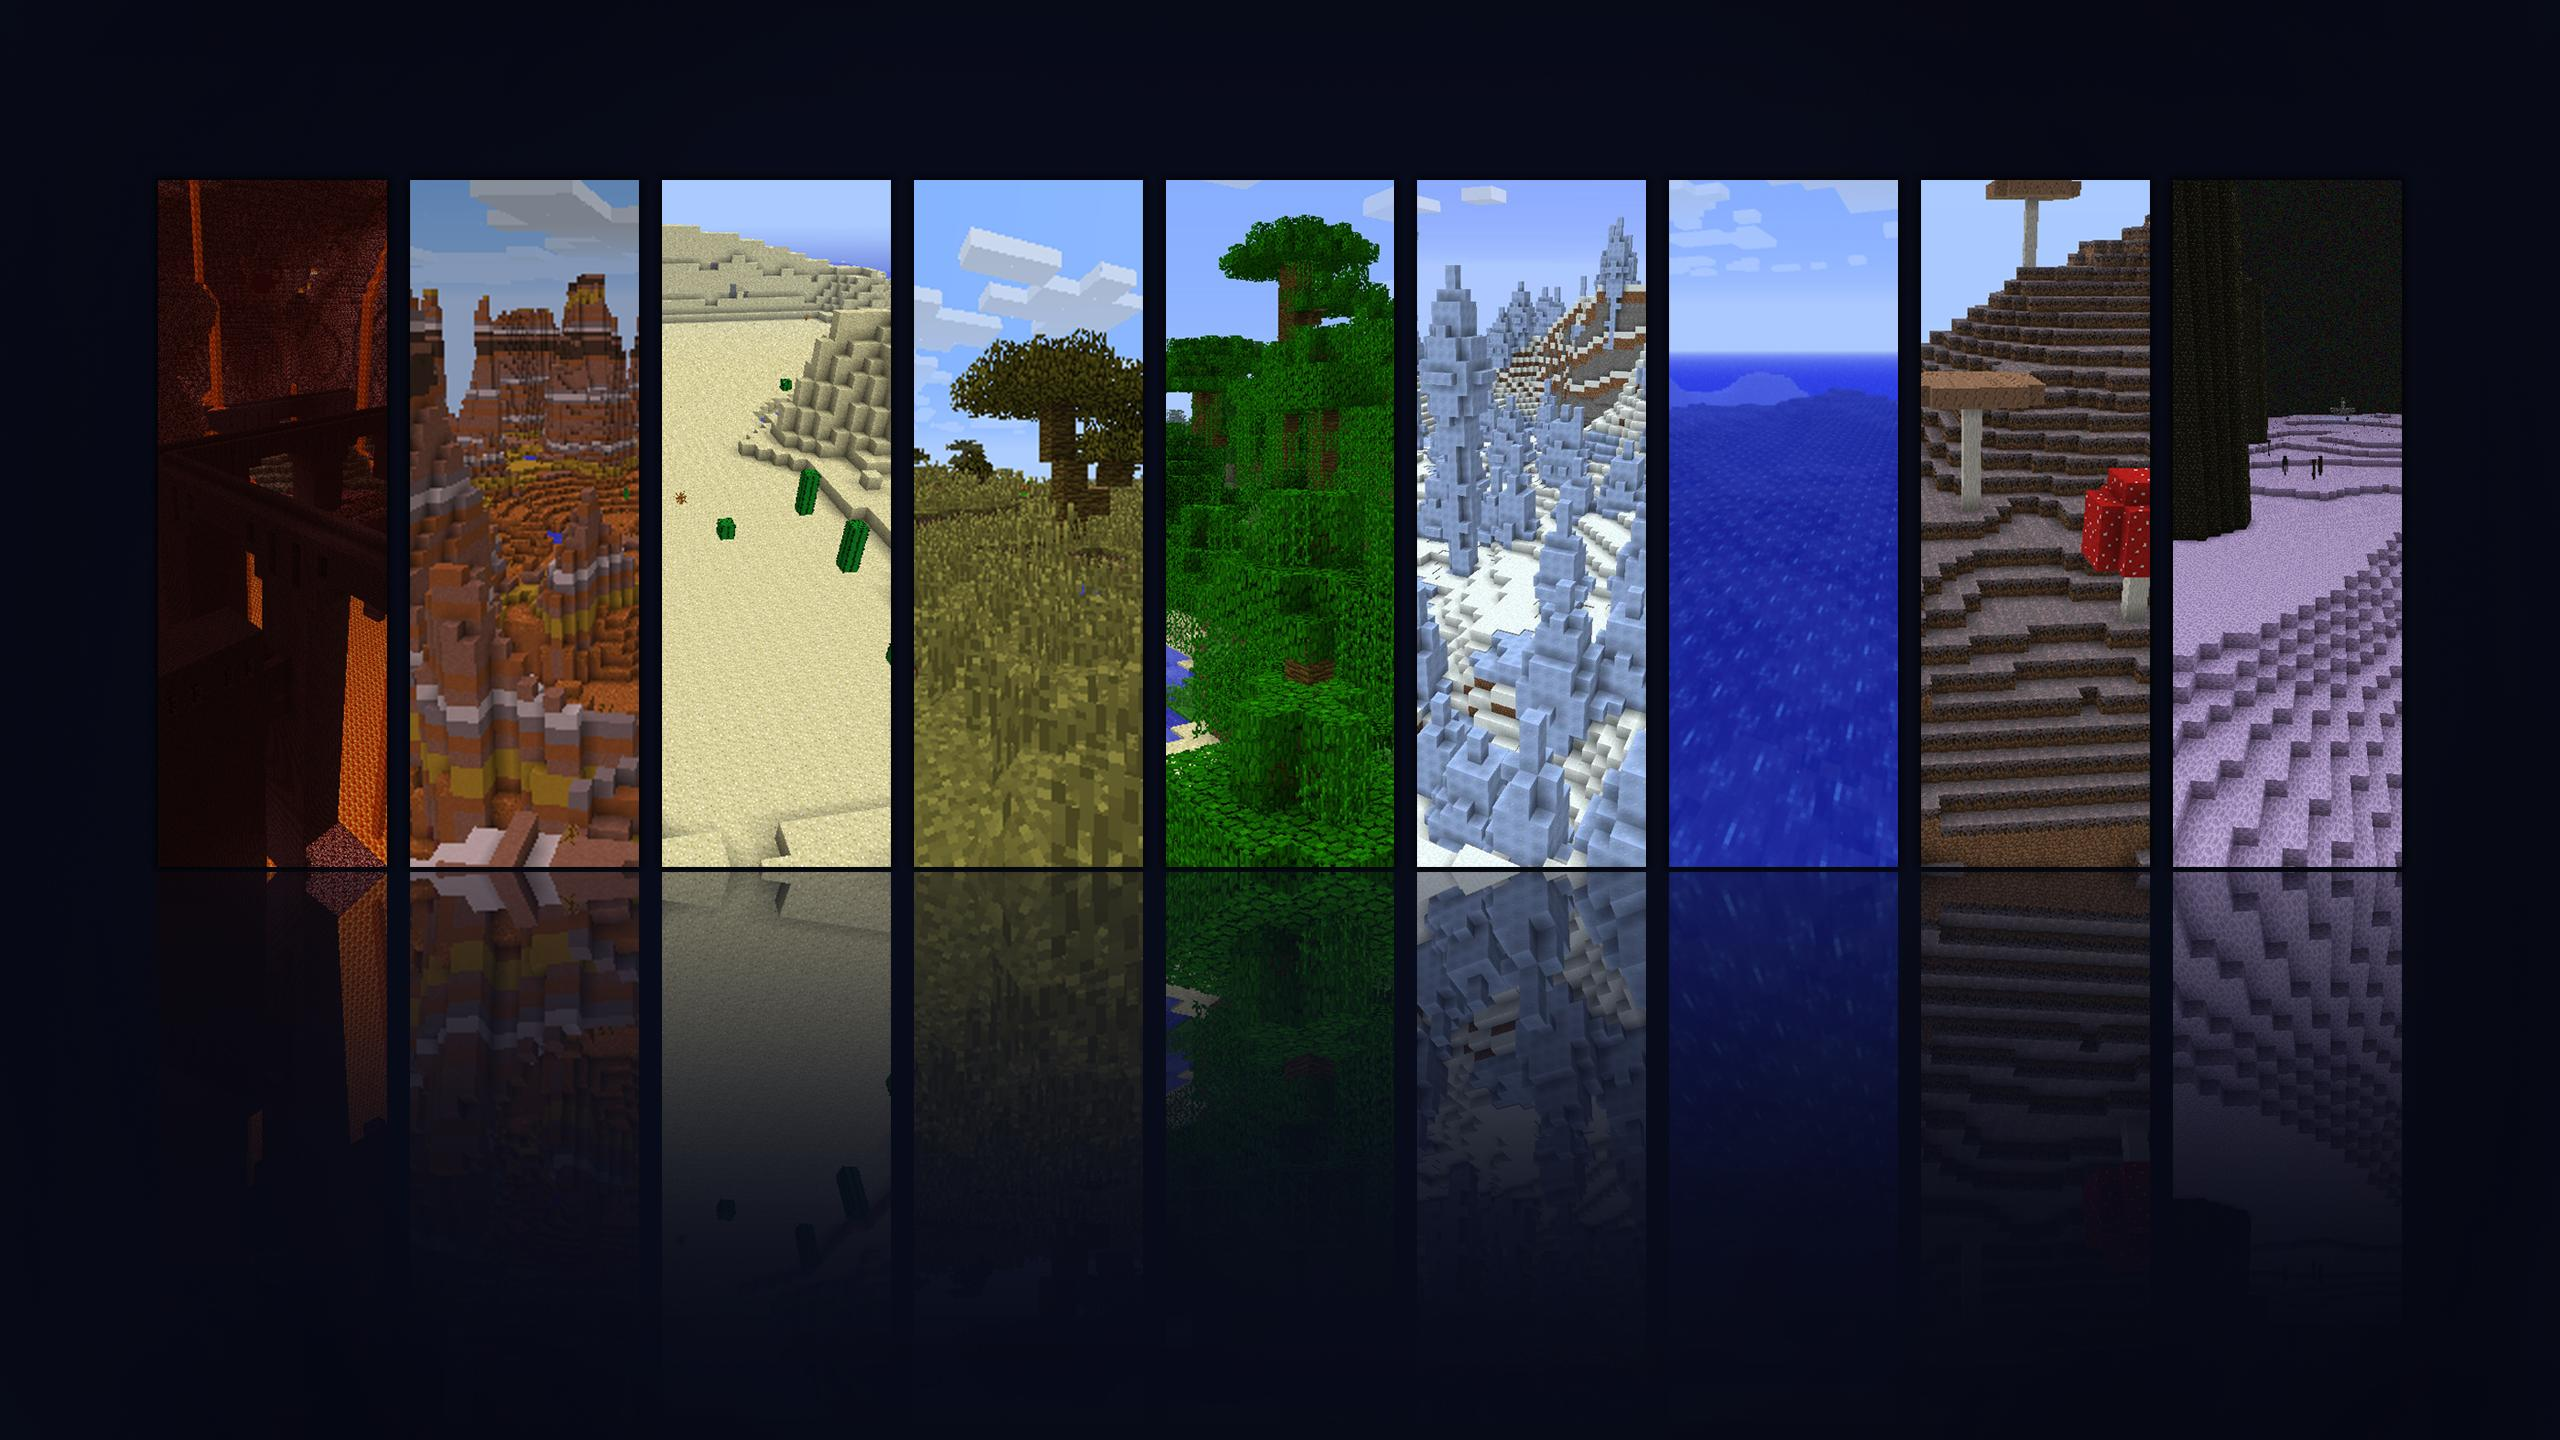 2560x1440 Minecraft Wallpapers Top Free 2560x1440 Minecraft